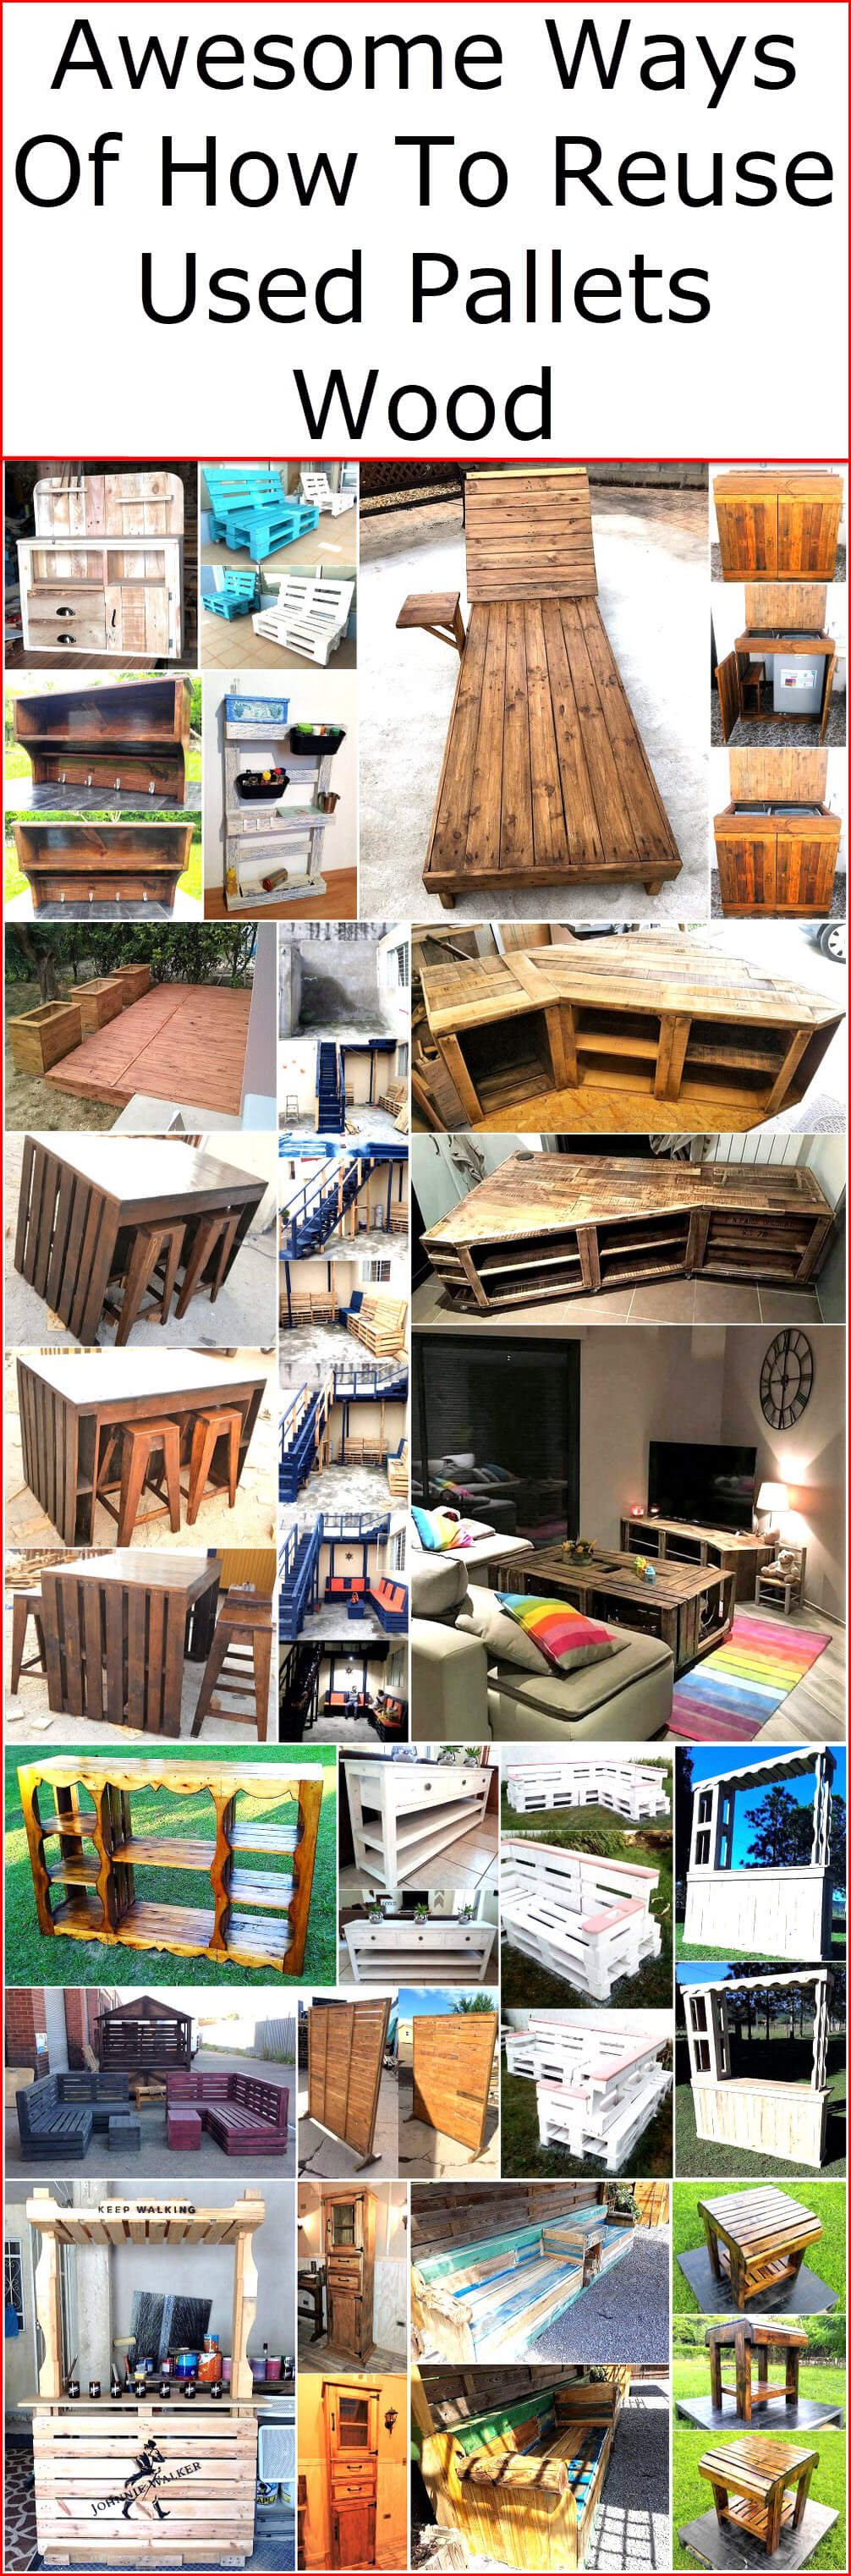 Awesome Ways Of How To Reuse Used Pallets Wood (1)